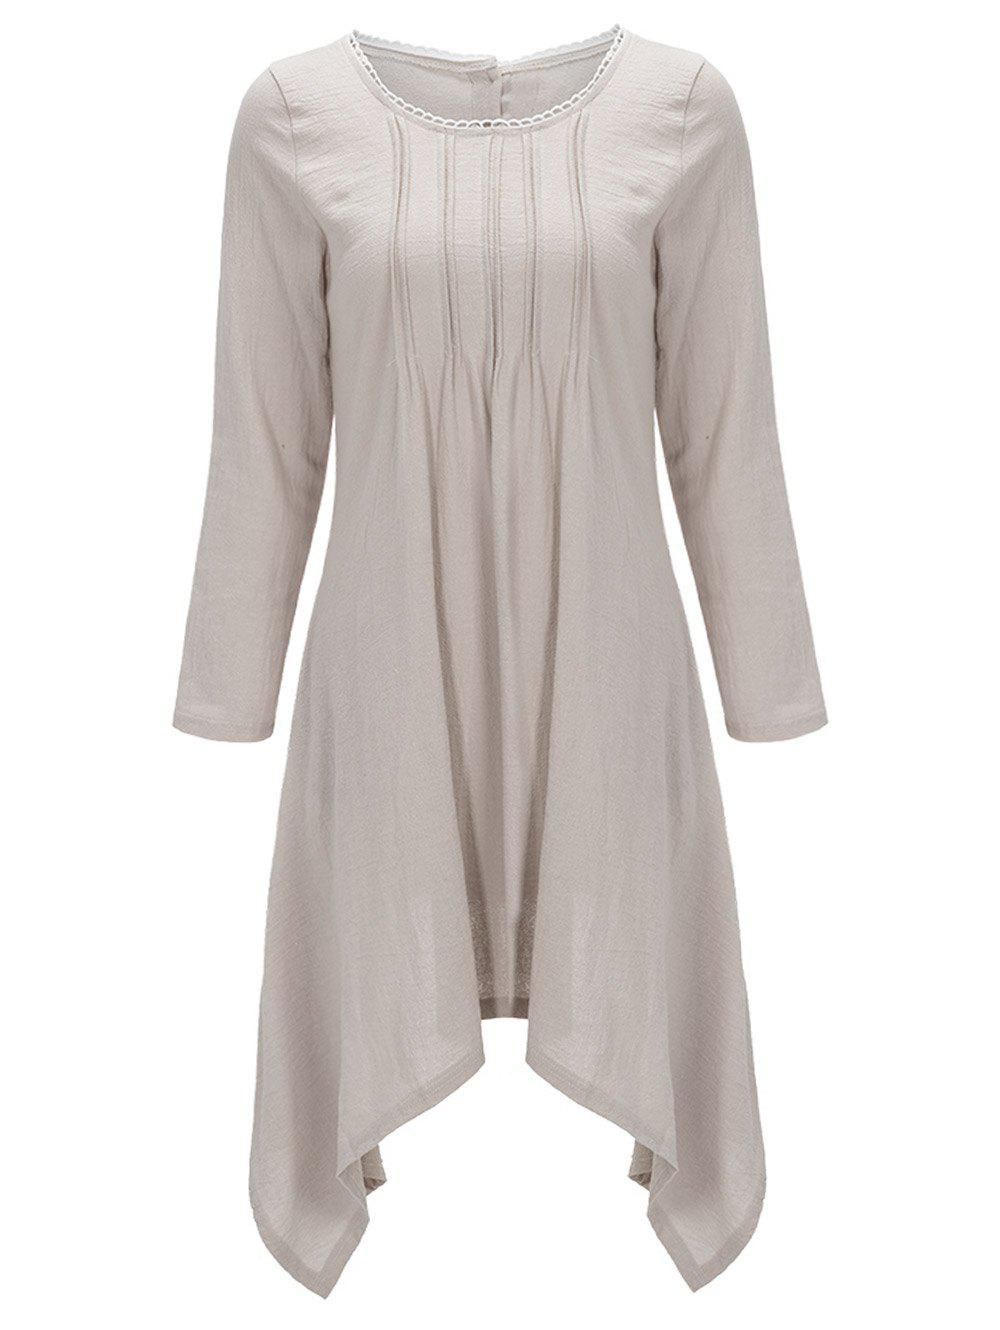 Asymétrique Bouton Back Up Robe Tunique - Café Clair XL